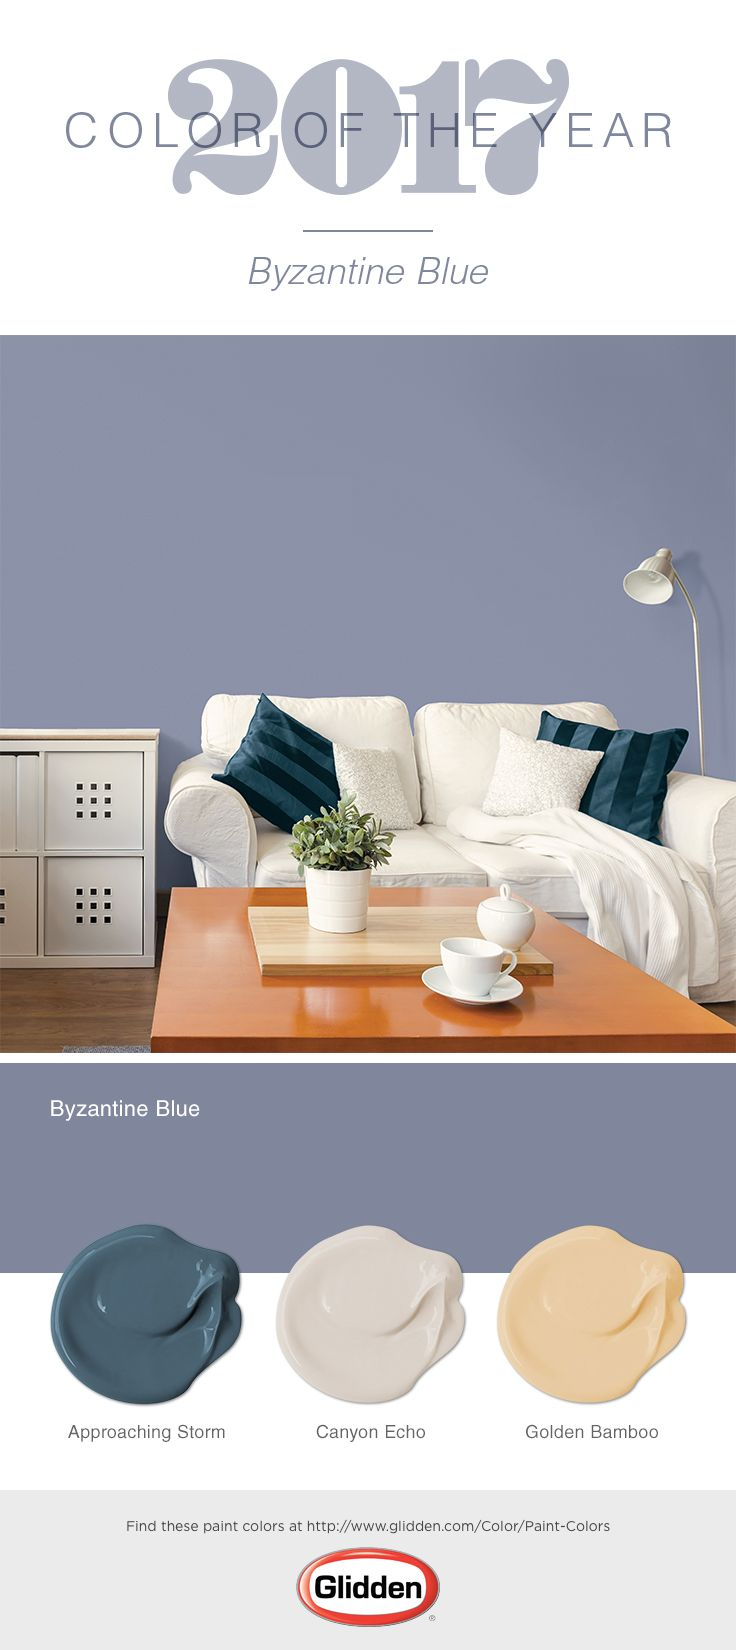 A playful yet peaceful purple, Byzantine Blue is the Glidden® 2017 Color of the Year! For a traditional style space, use this bluish-purple paint color paired with a warm yellow neutral like Golden Bamboo, a cool neutral such as Canyon Echo, and a warm, deep blue like Approaching Storm.